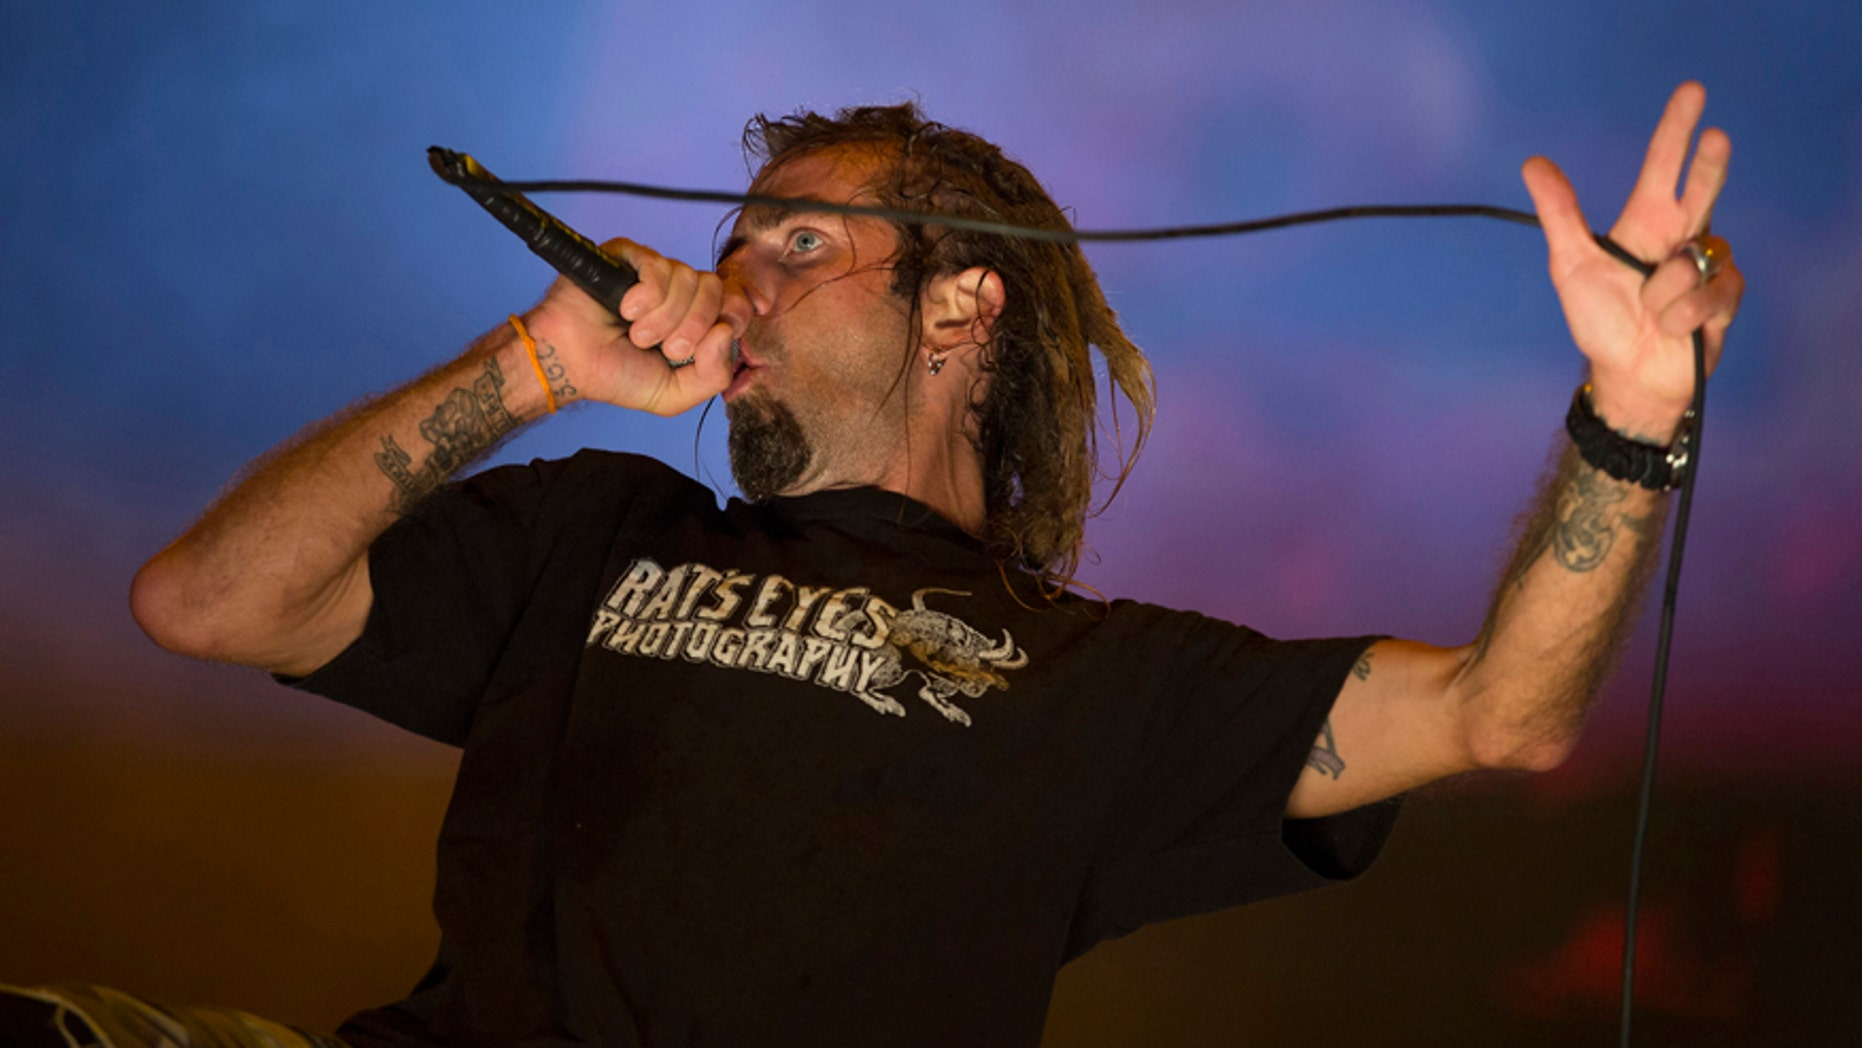 In this Sept. 24, 2015 photo, Randy Blythe of the heavy metal group Lamb of God performs at the Rock in Rio music festival in Rio de Janeiro, Brazil.